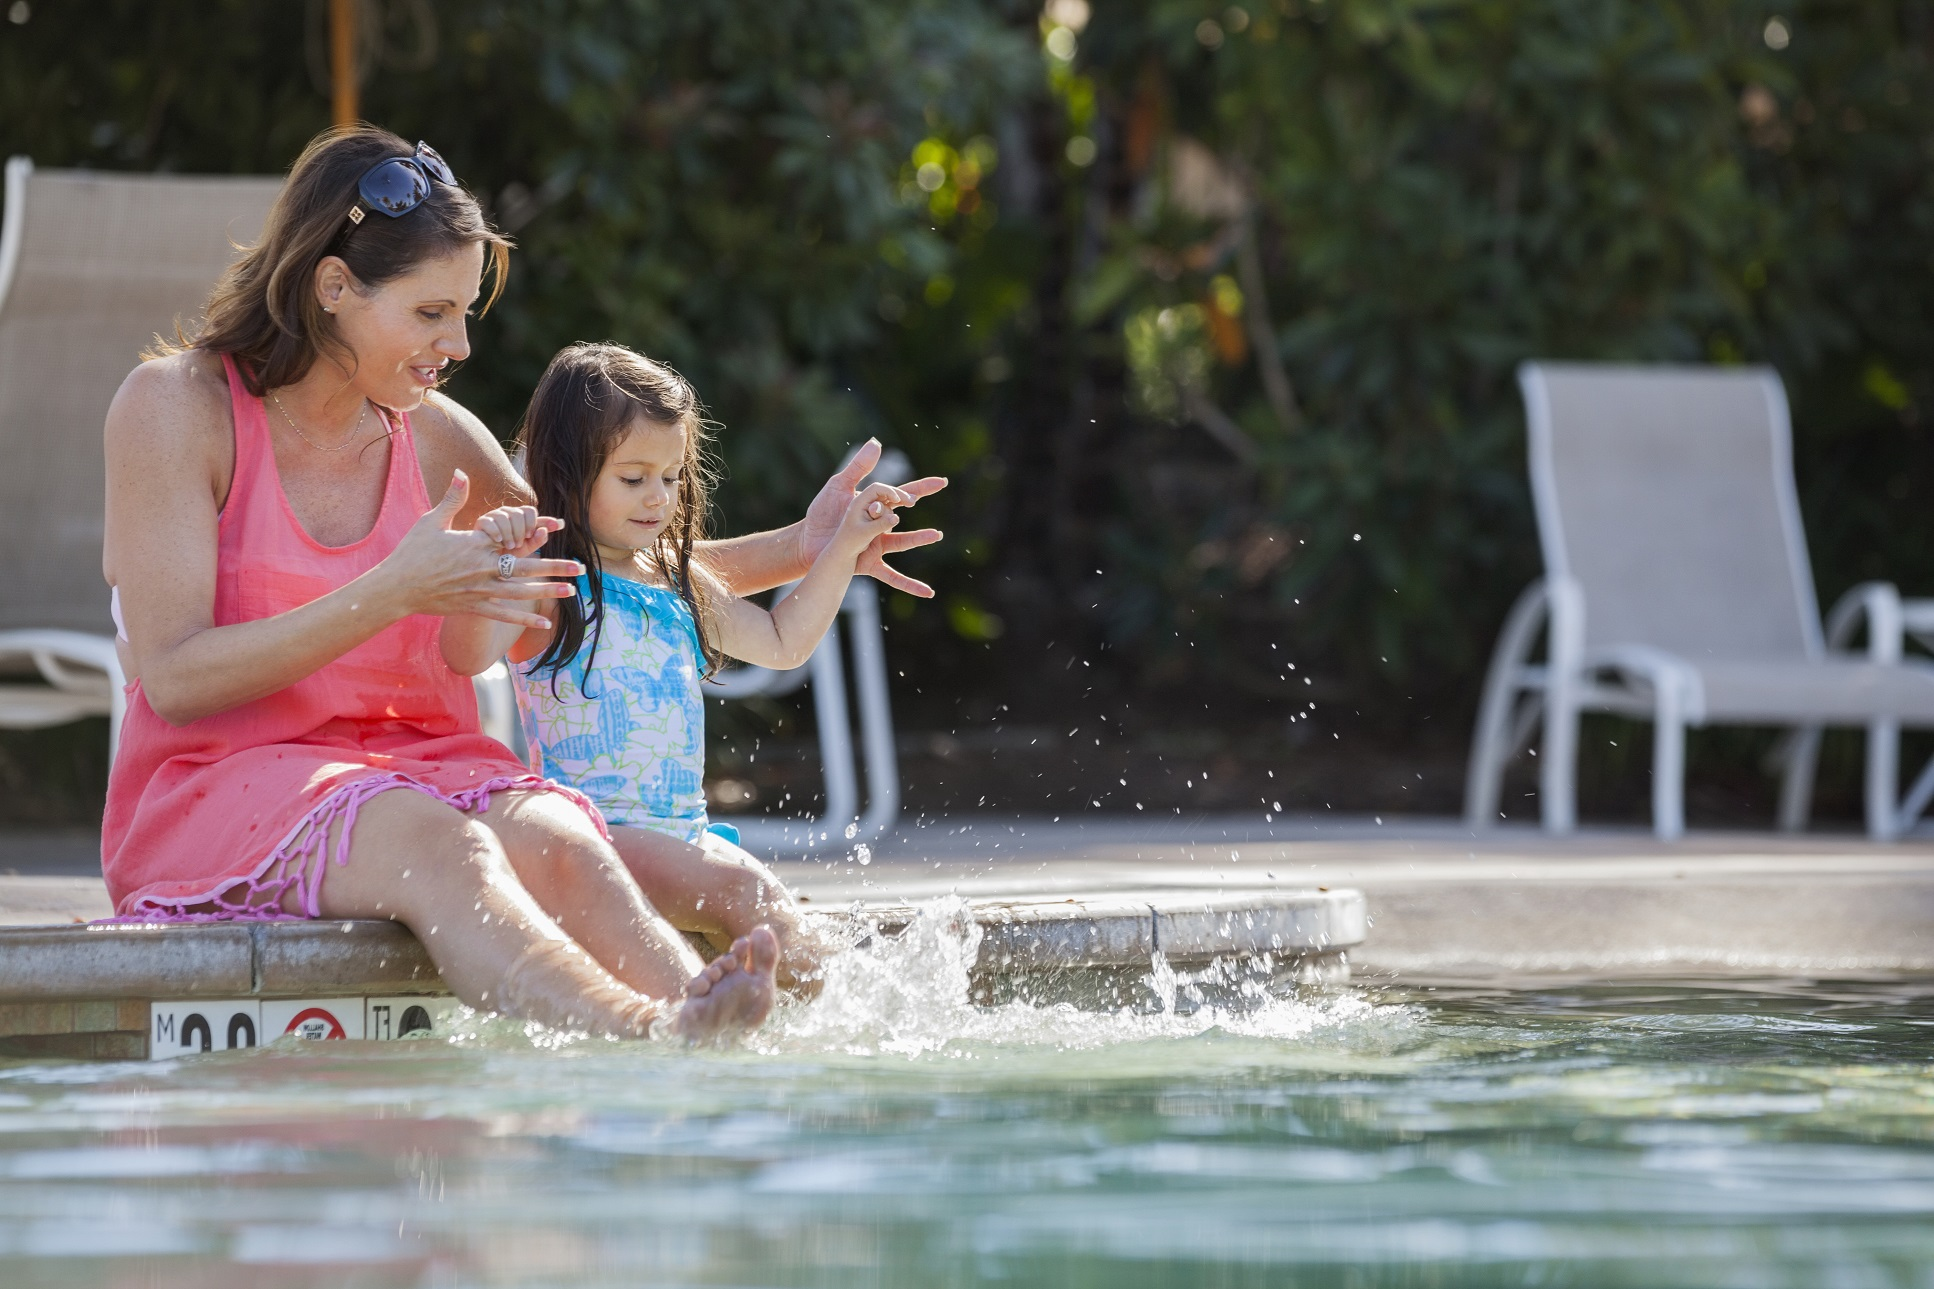 Mother and daughter sitting at the edge of pool splashing